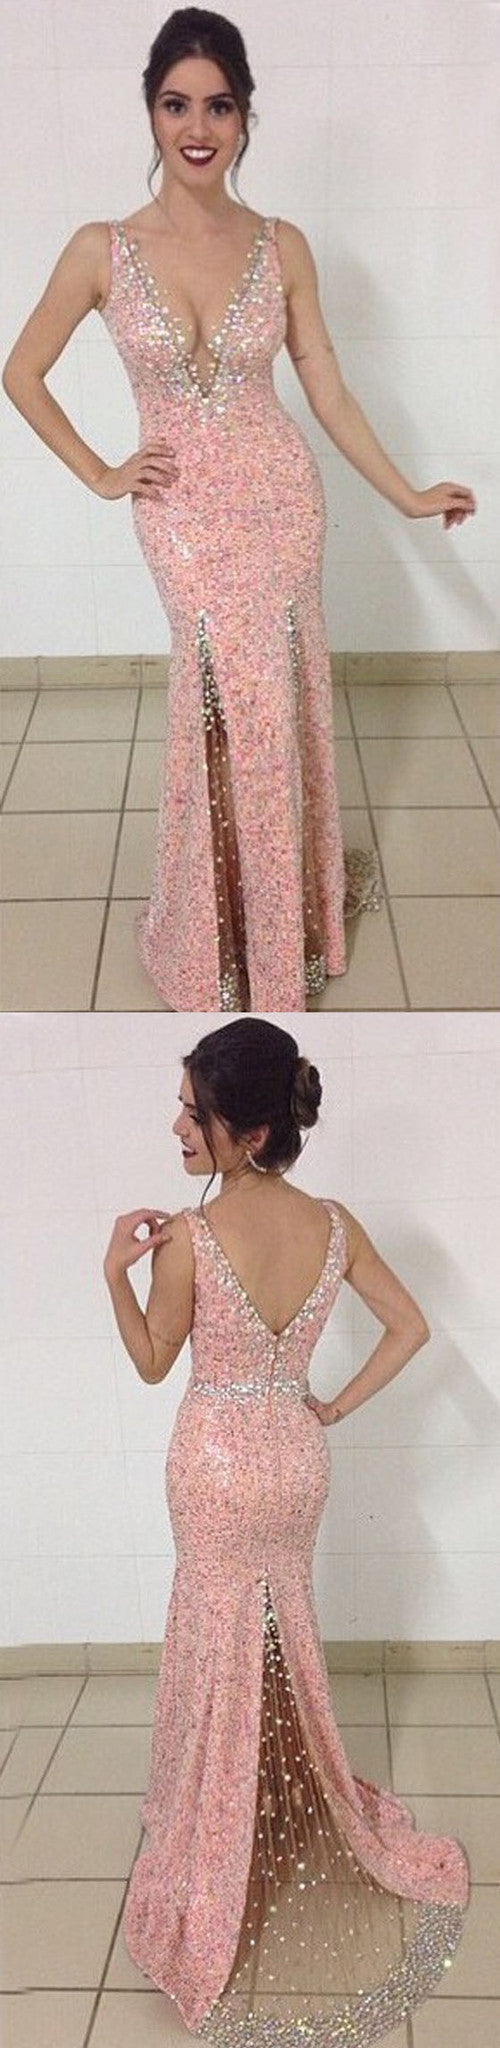 Win the Heart of Your Crush with Elegant Prom Dresses   Wish Gown ...